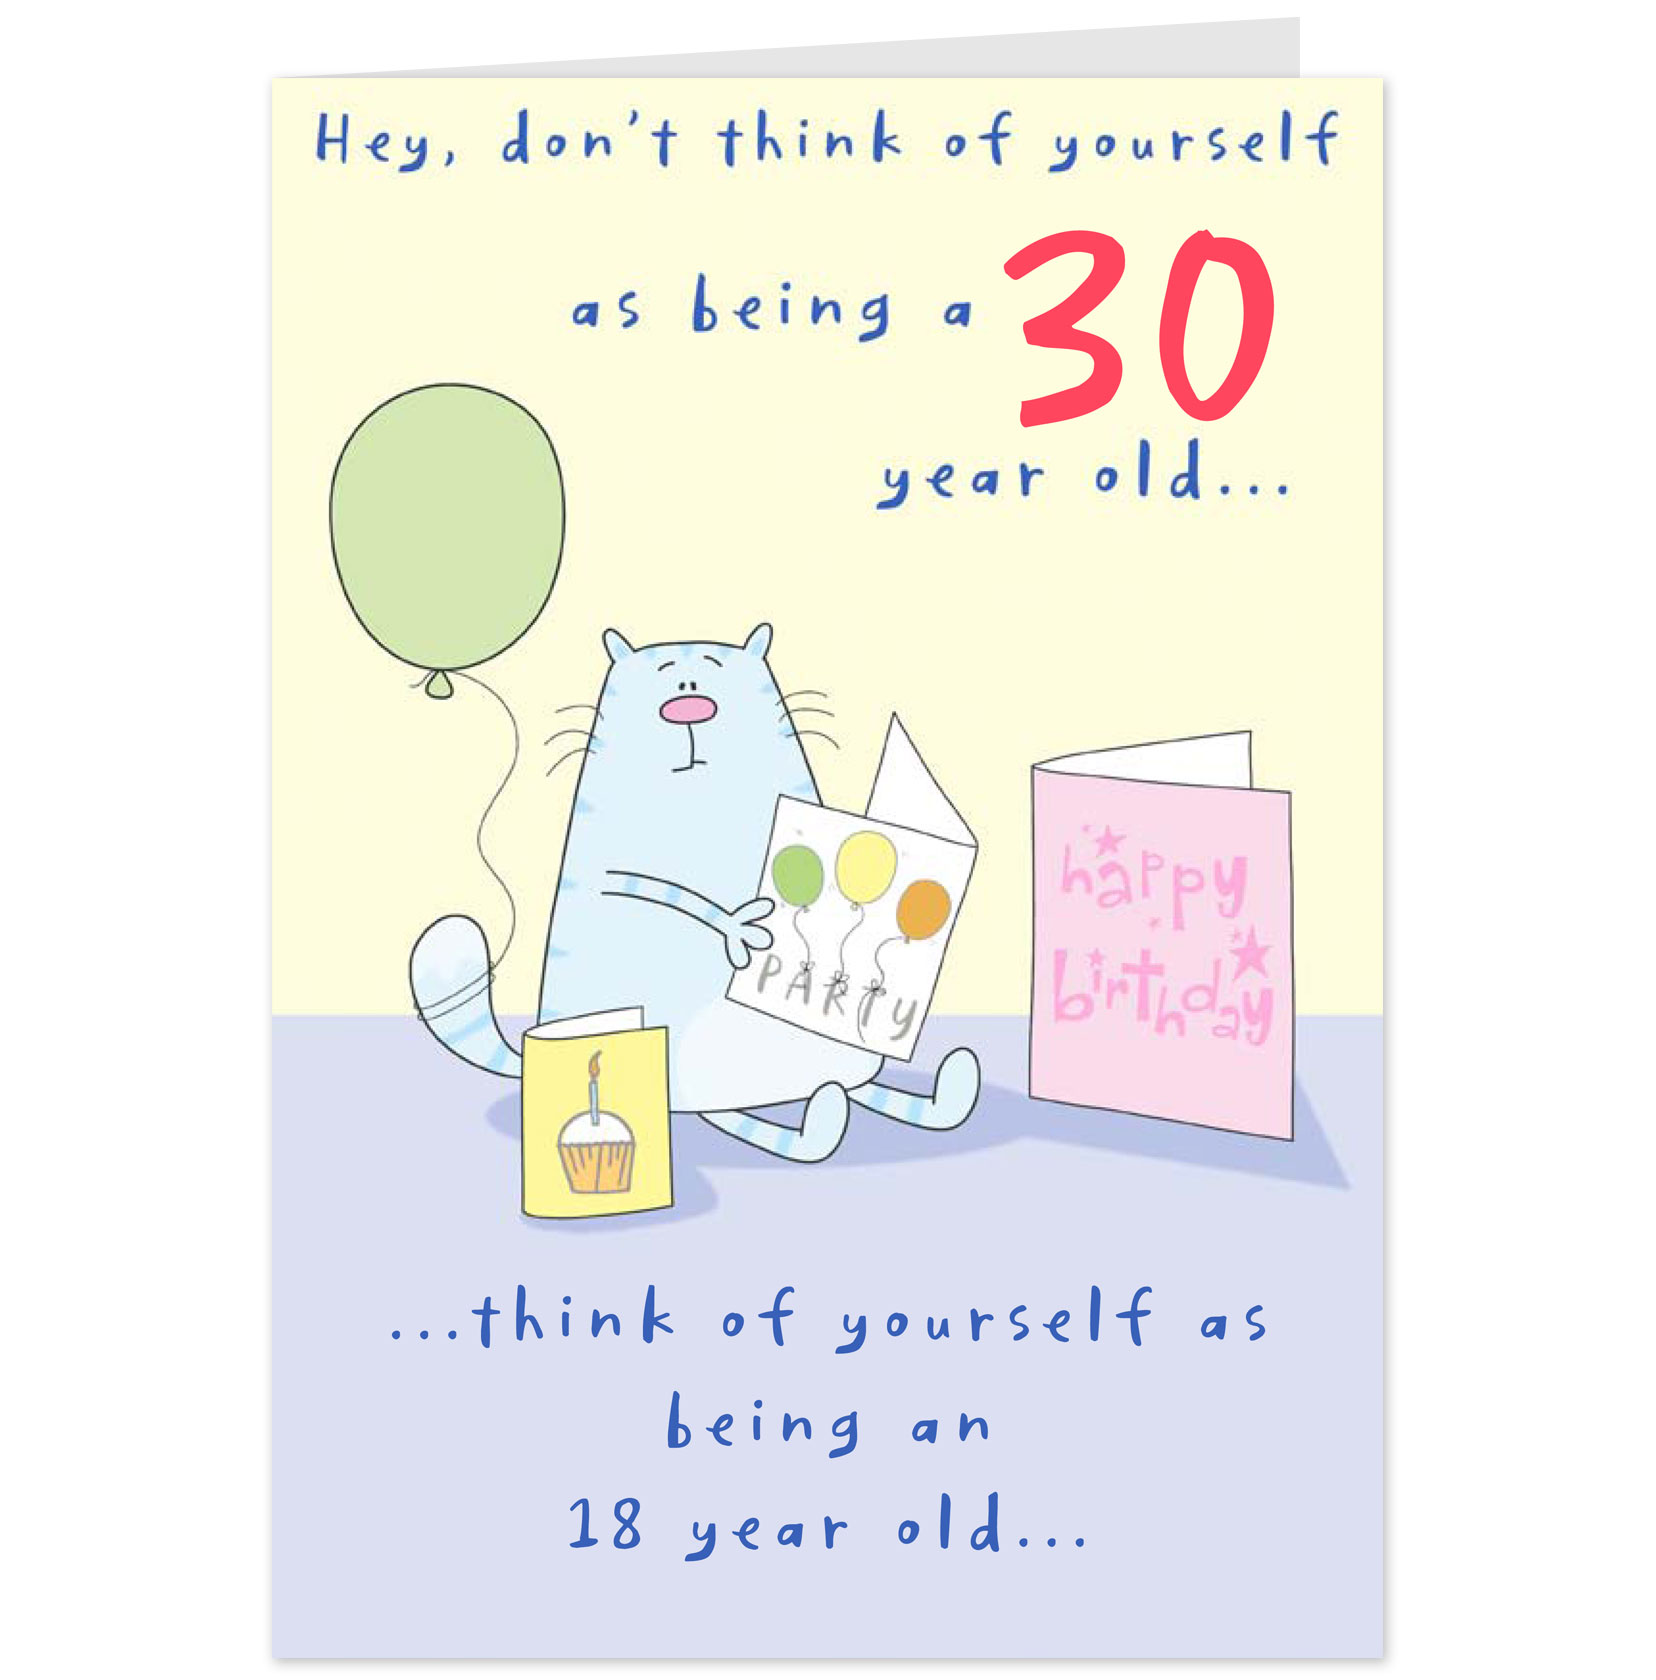 30 Most Funny Birthday Quotes: Funny 30th Birthday Quotes For Men. QuotesGram